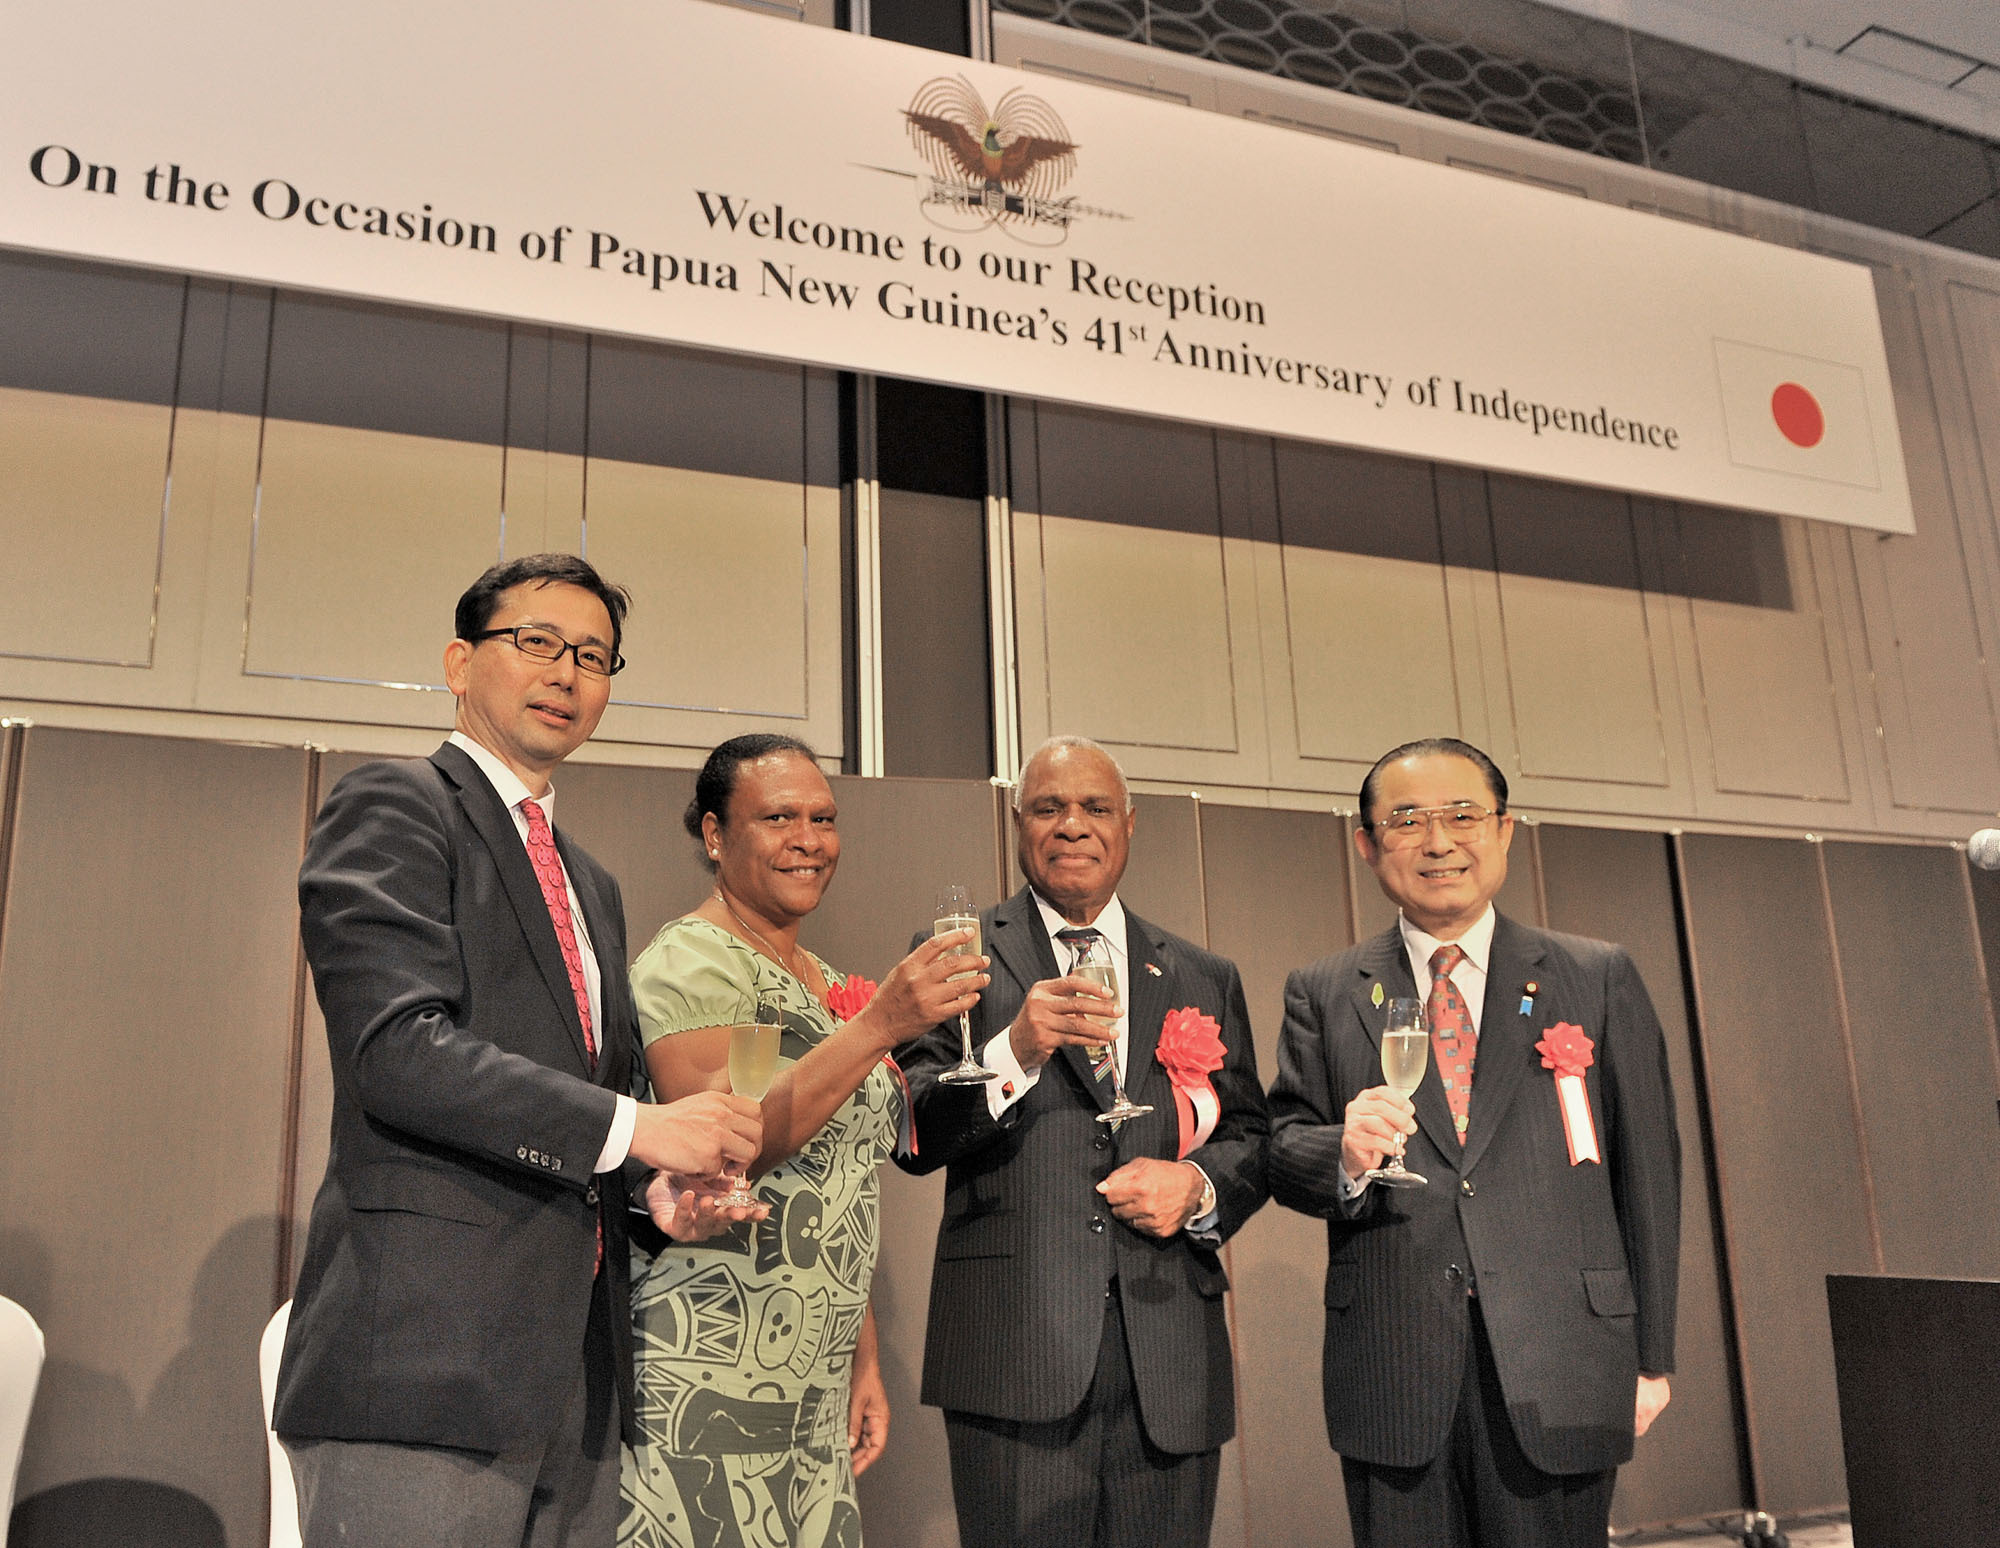 Papua New Guinea's Ambassador Gabriel JK Dusava (second from right) and his wife Anna prepare to toast with Deputy Director-General, Ministry of Foreign Affairs Asian and Oceanian Affairs Bureau Noriyuki Shikata (left) and Chairman of the Japan-Papua New Guinea Parliamentarian's Friendship League Kazunori Tanaka  during a reception celebrating the country's 41st Anniversary of Independence at the Marriott Hotel in Tokyo on Sept. 16. | YOSHIAKI MIURA